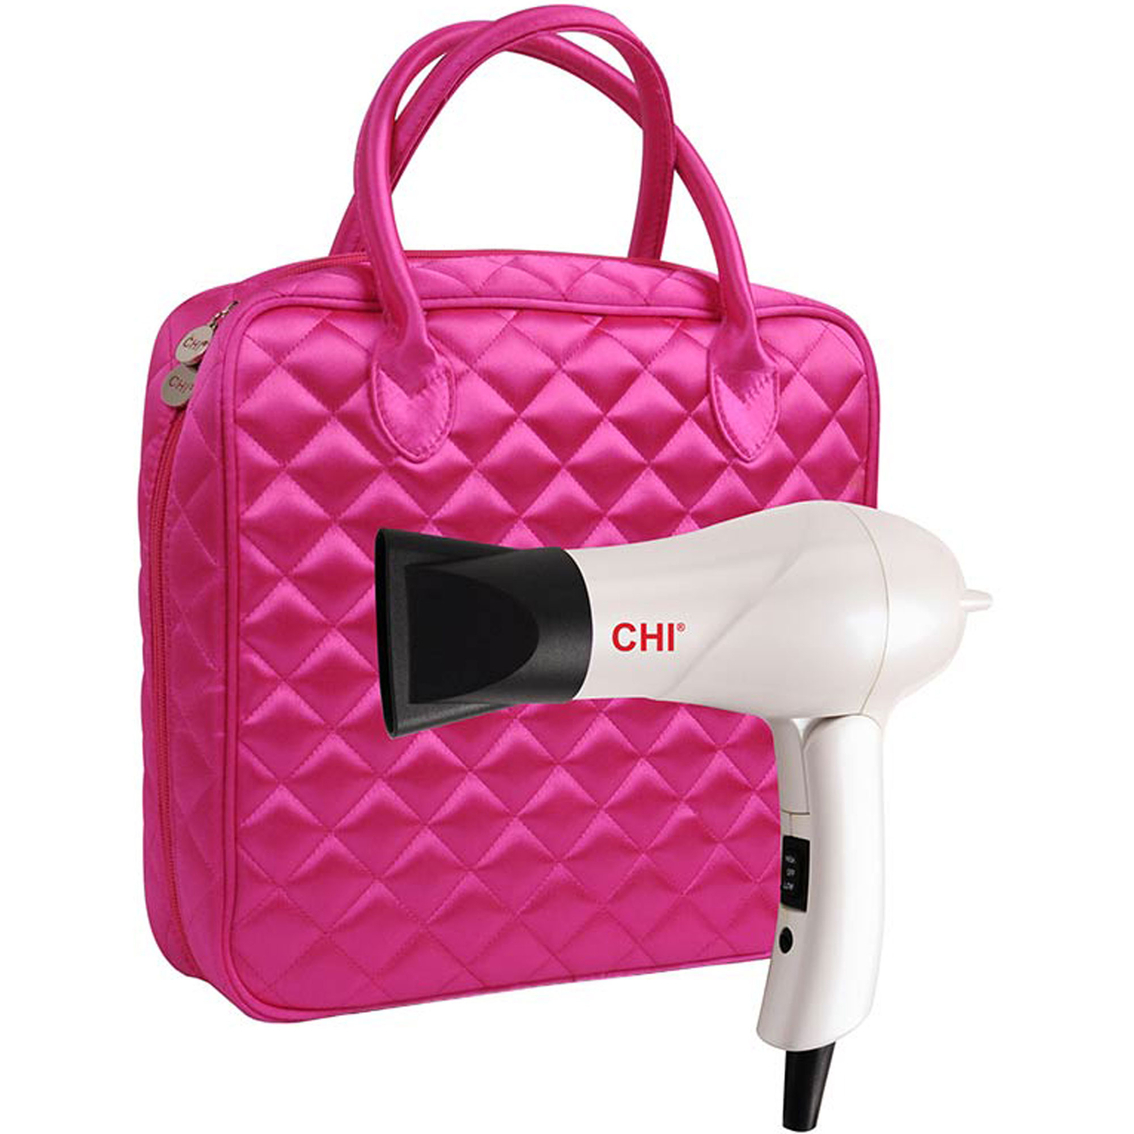 Chi Professional Travel Hair Dryer With Bag Dryers